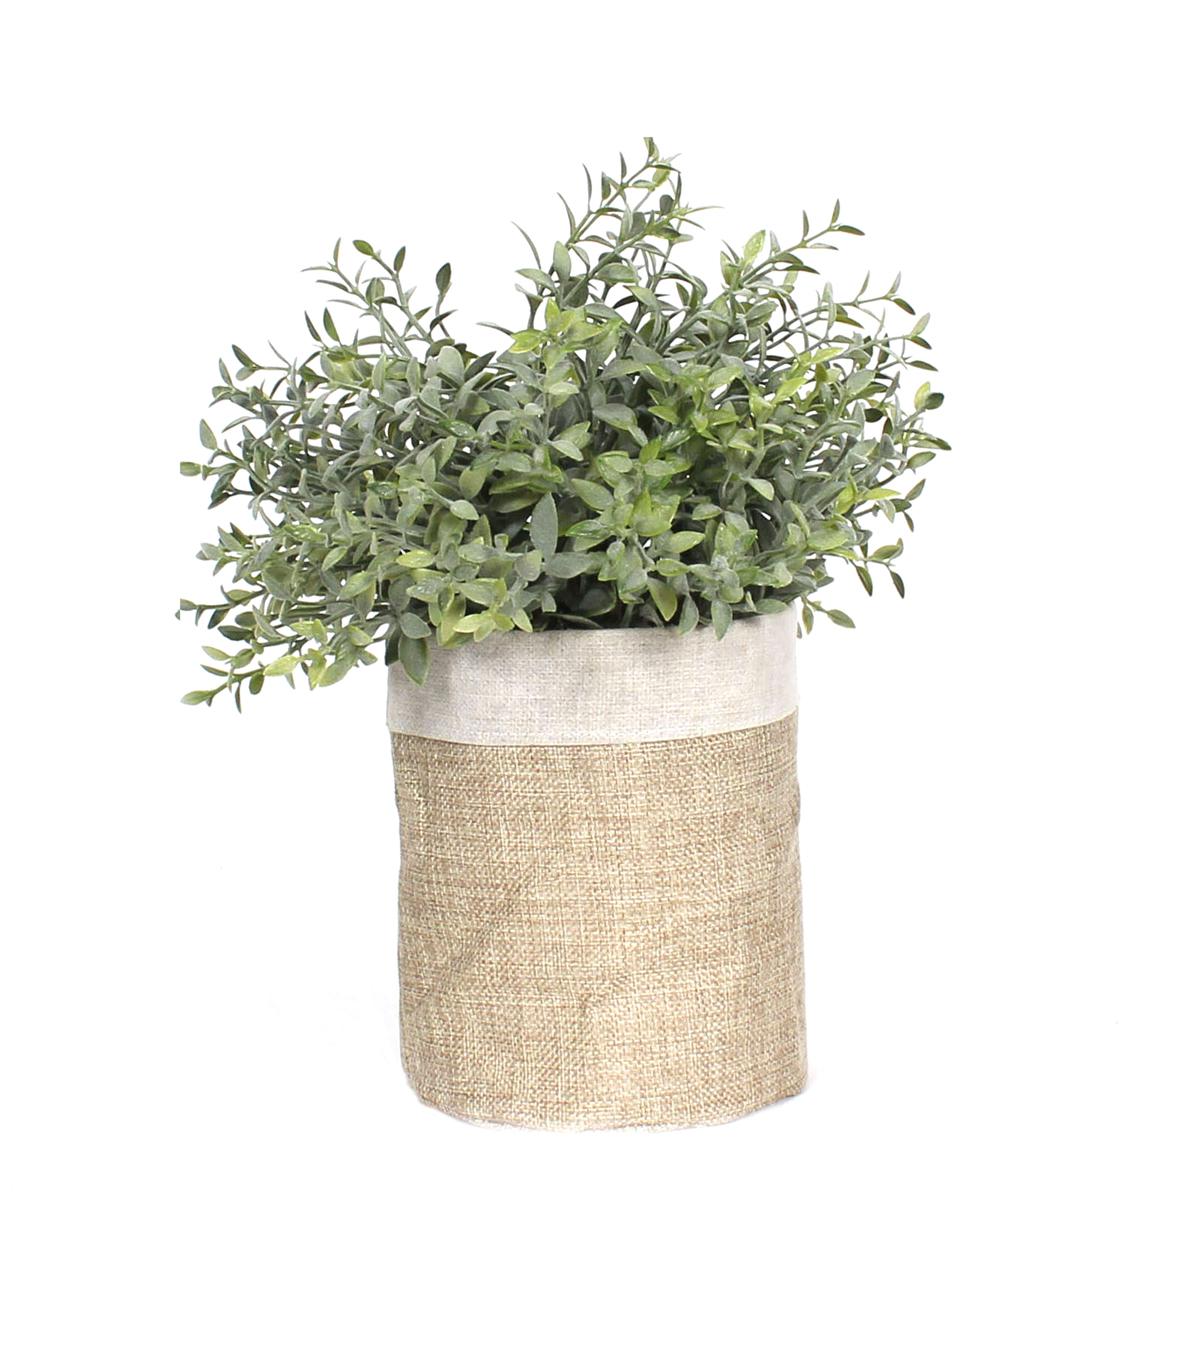 Simply Spring Greenery Arrangement with Burlap Pot